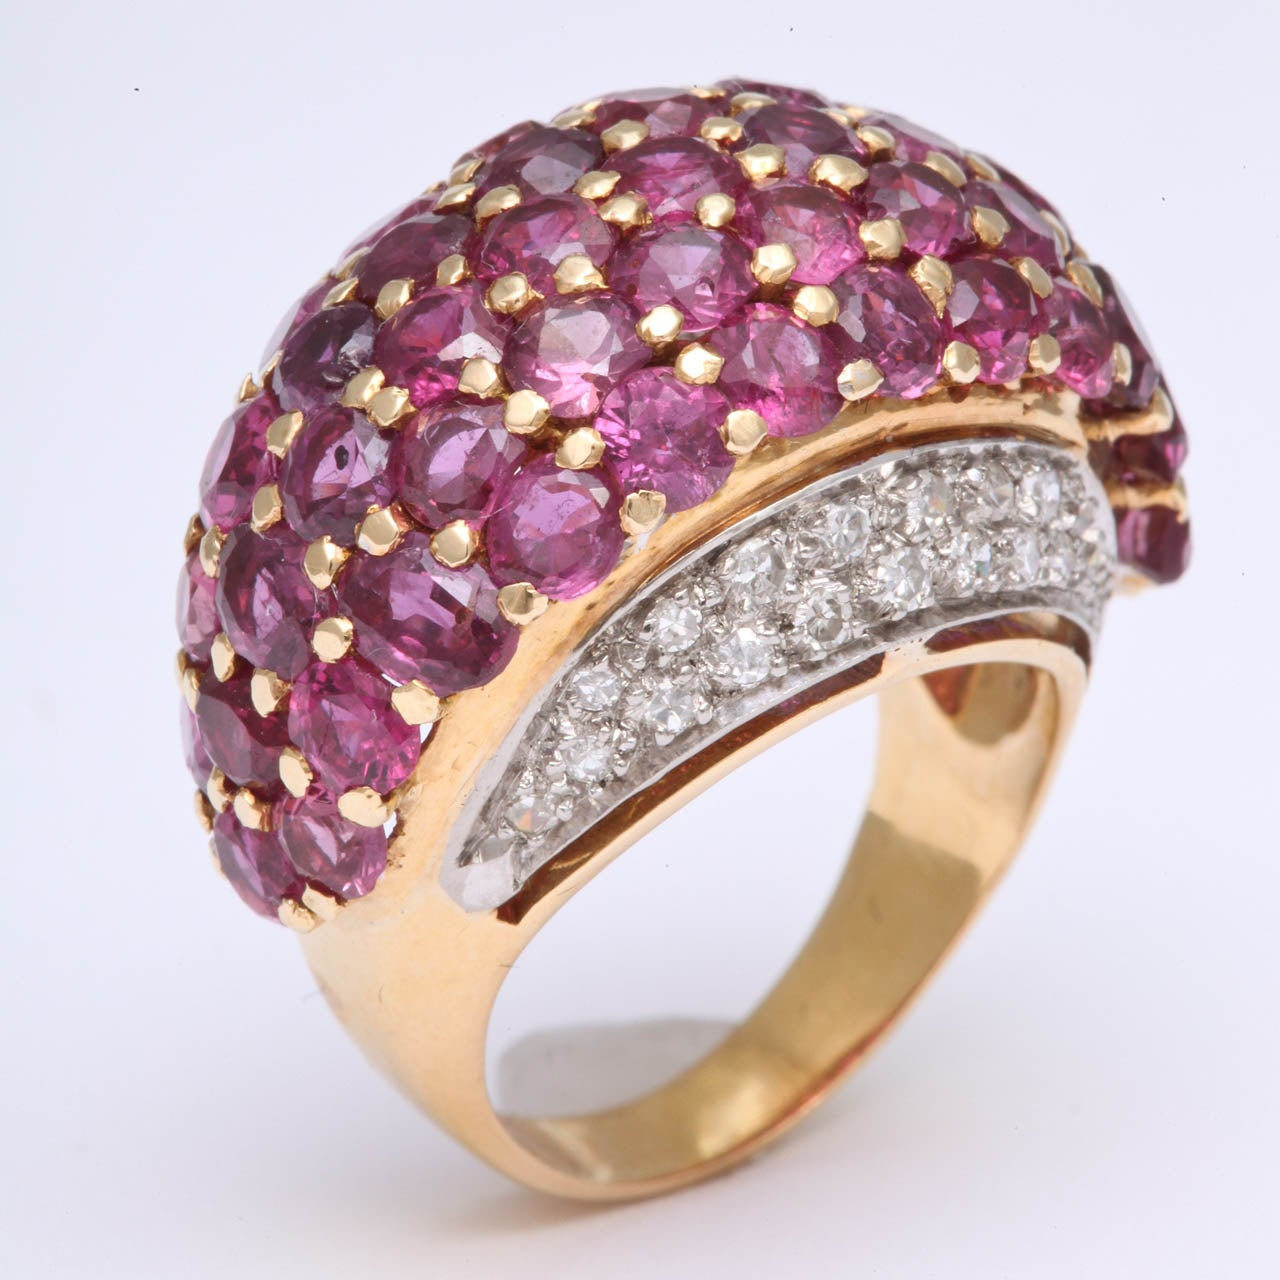 Women's Burmese Ruby & Diamond Ring For Sale